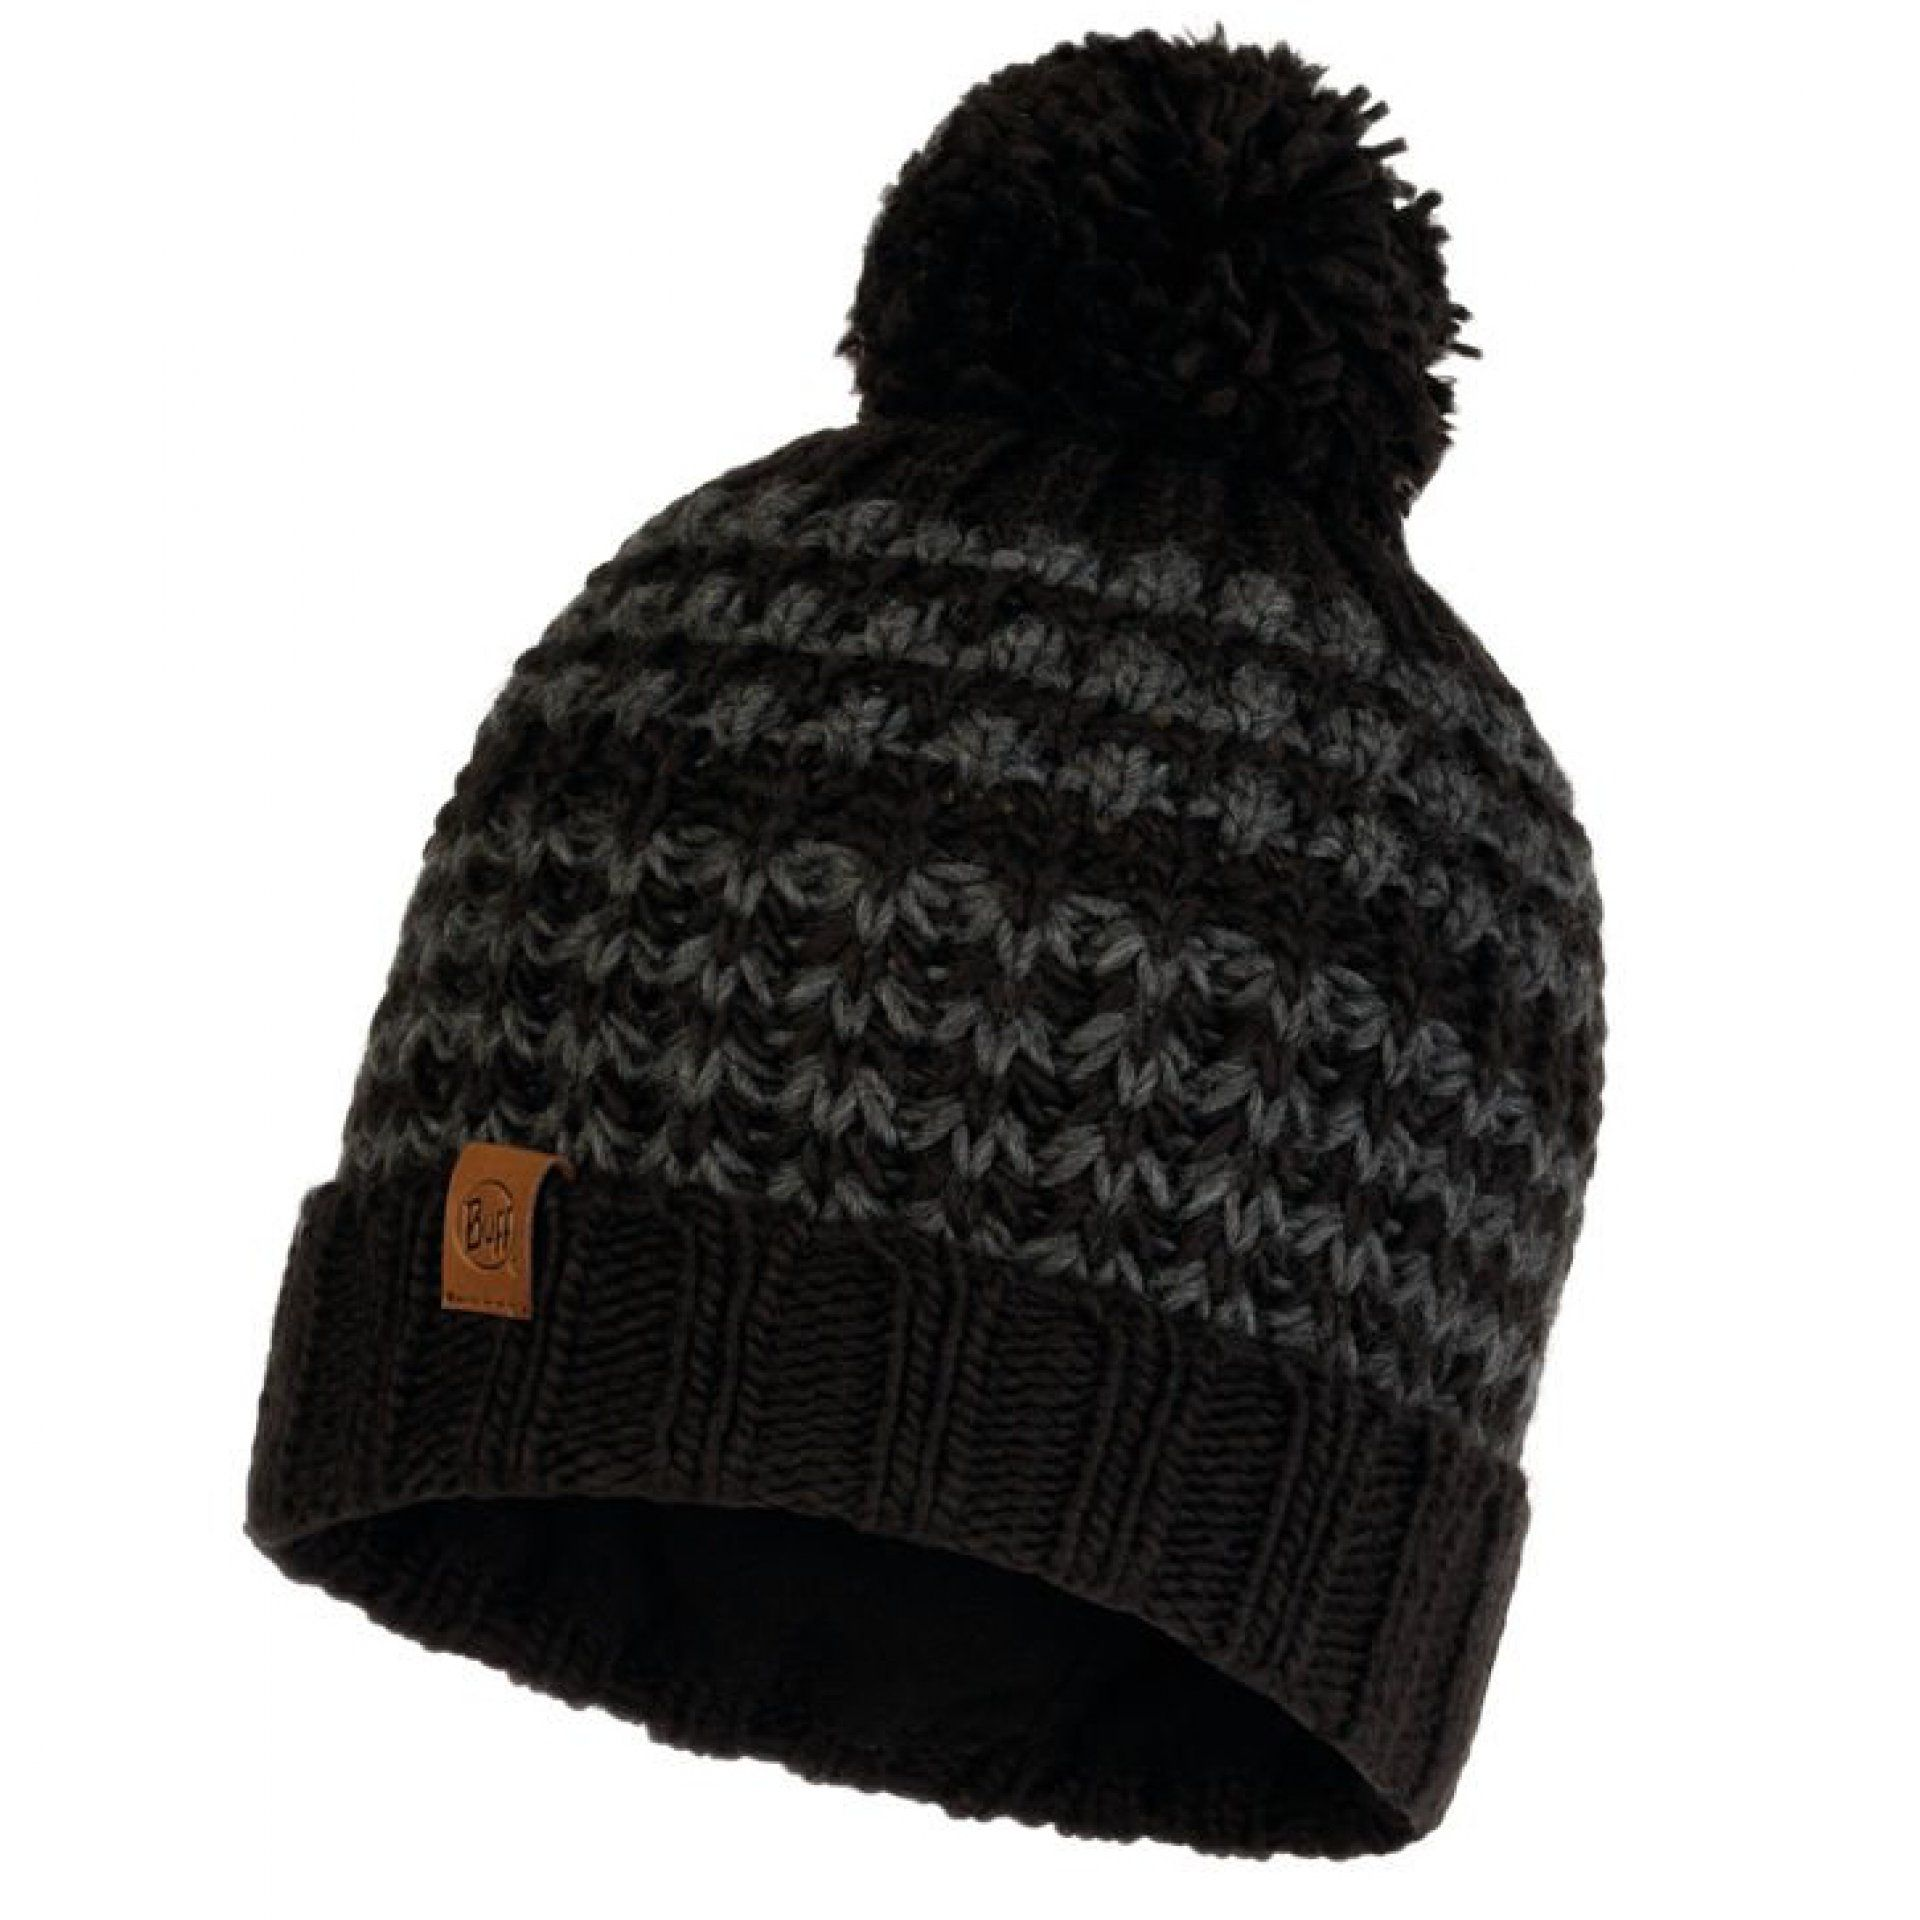 CZAPKA BUFF KNITTED AND FLEECE HAT KOSTIK BLACK